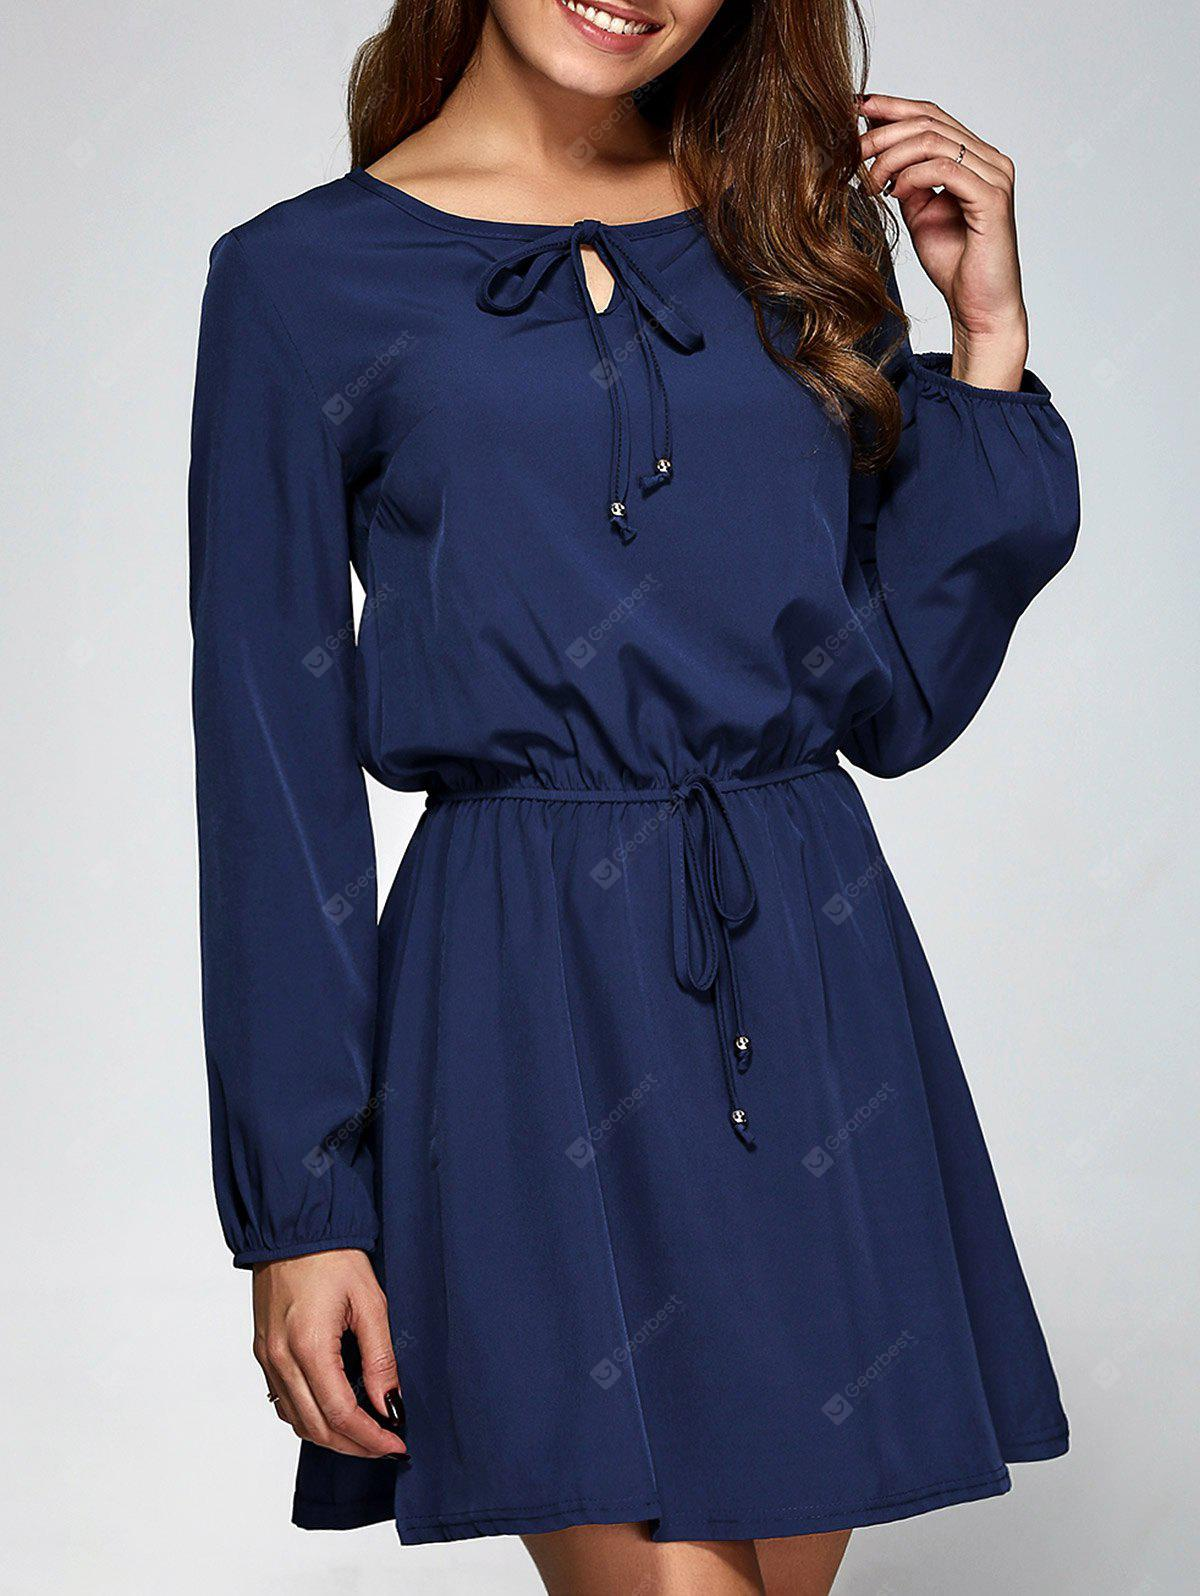 PURPLISH BLUE M Long Sleeve A-Line Dress